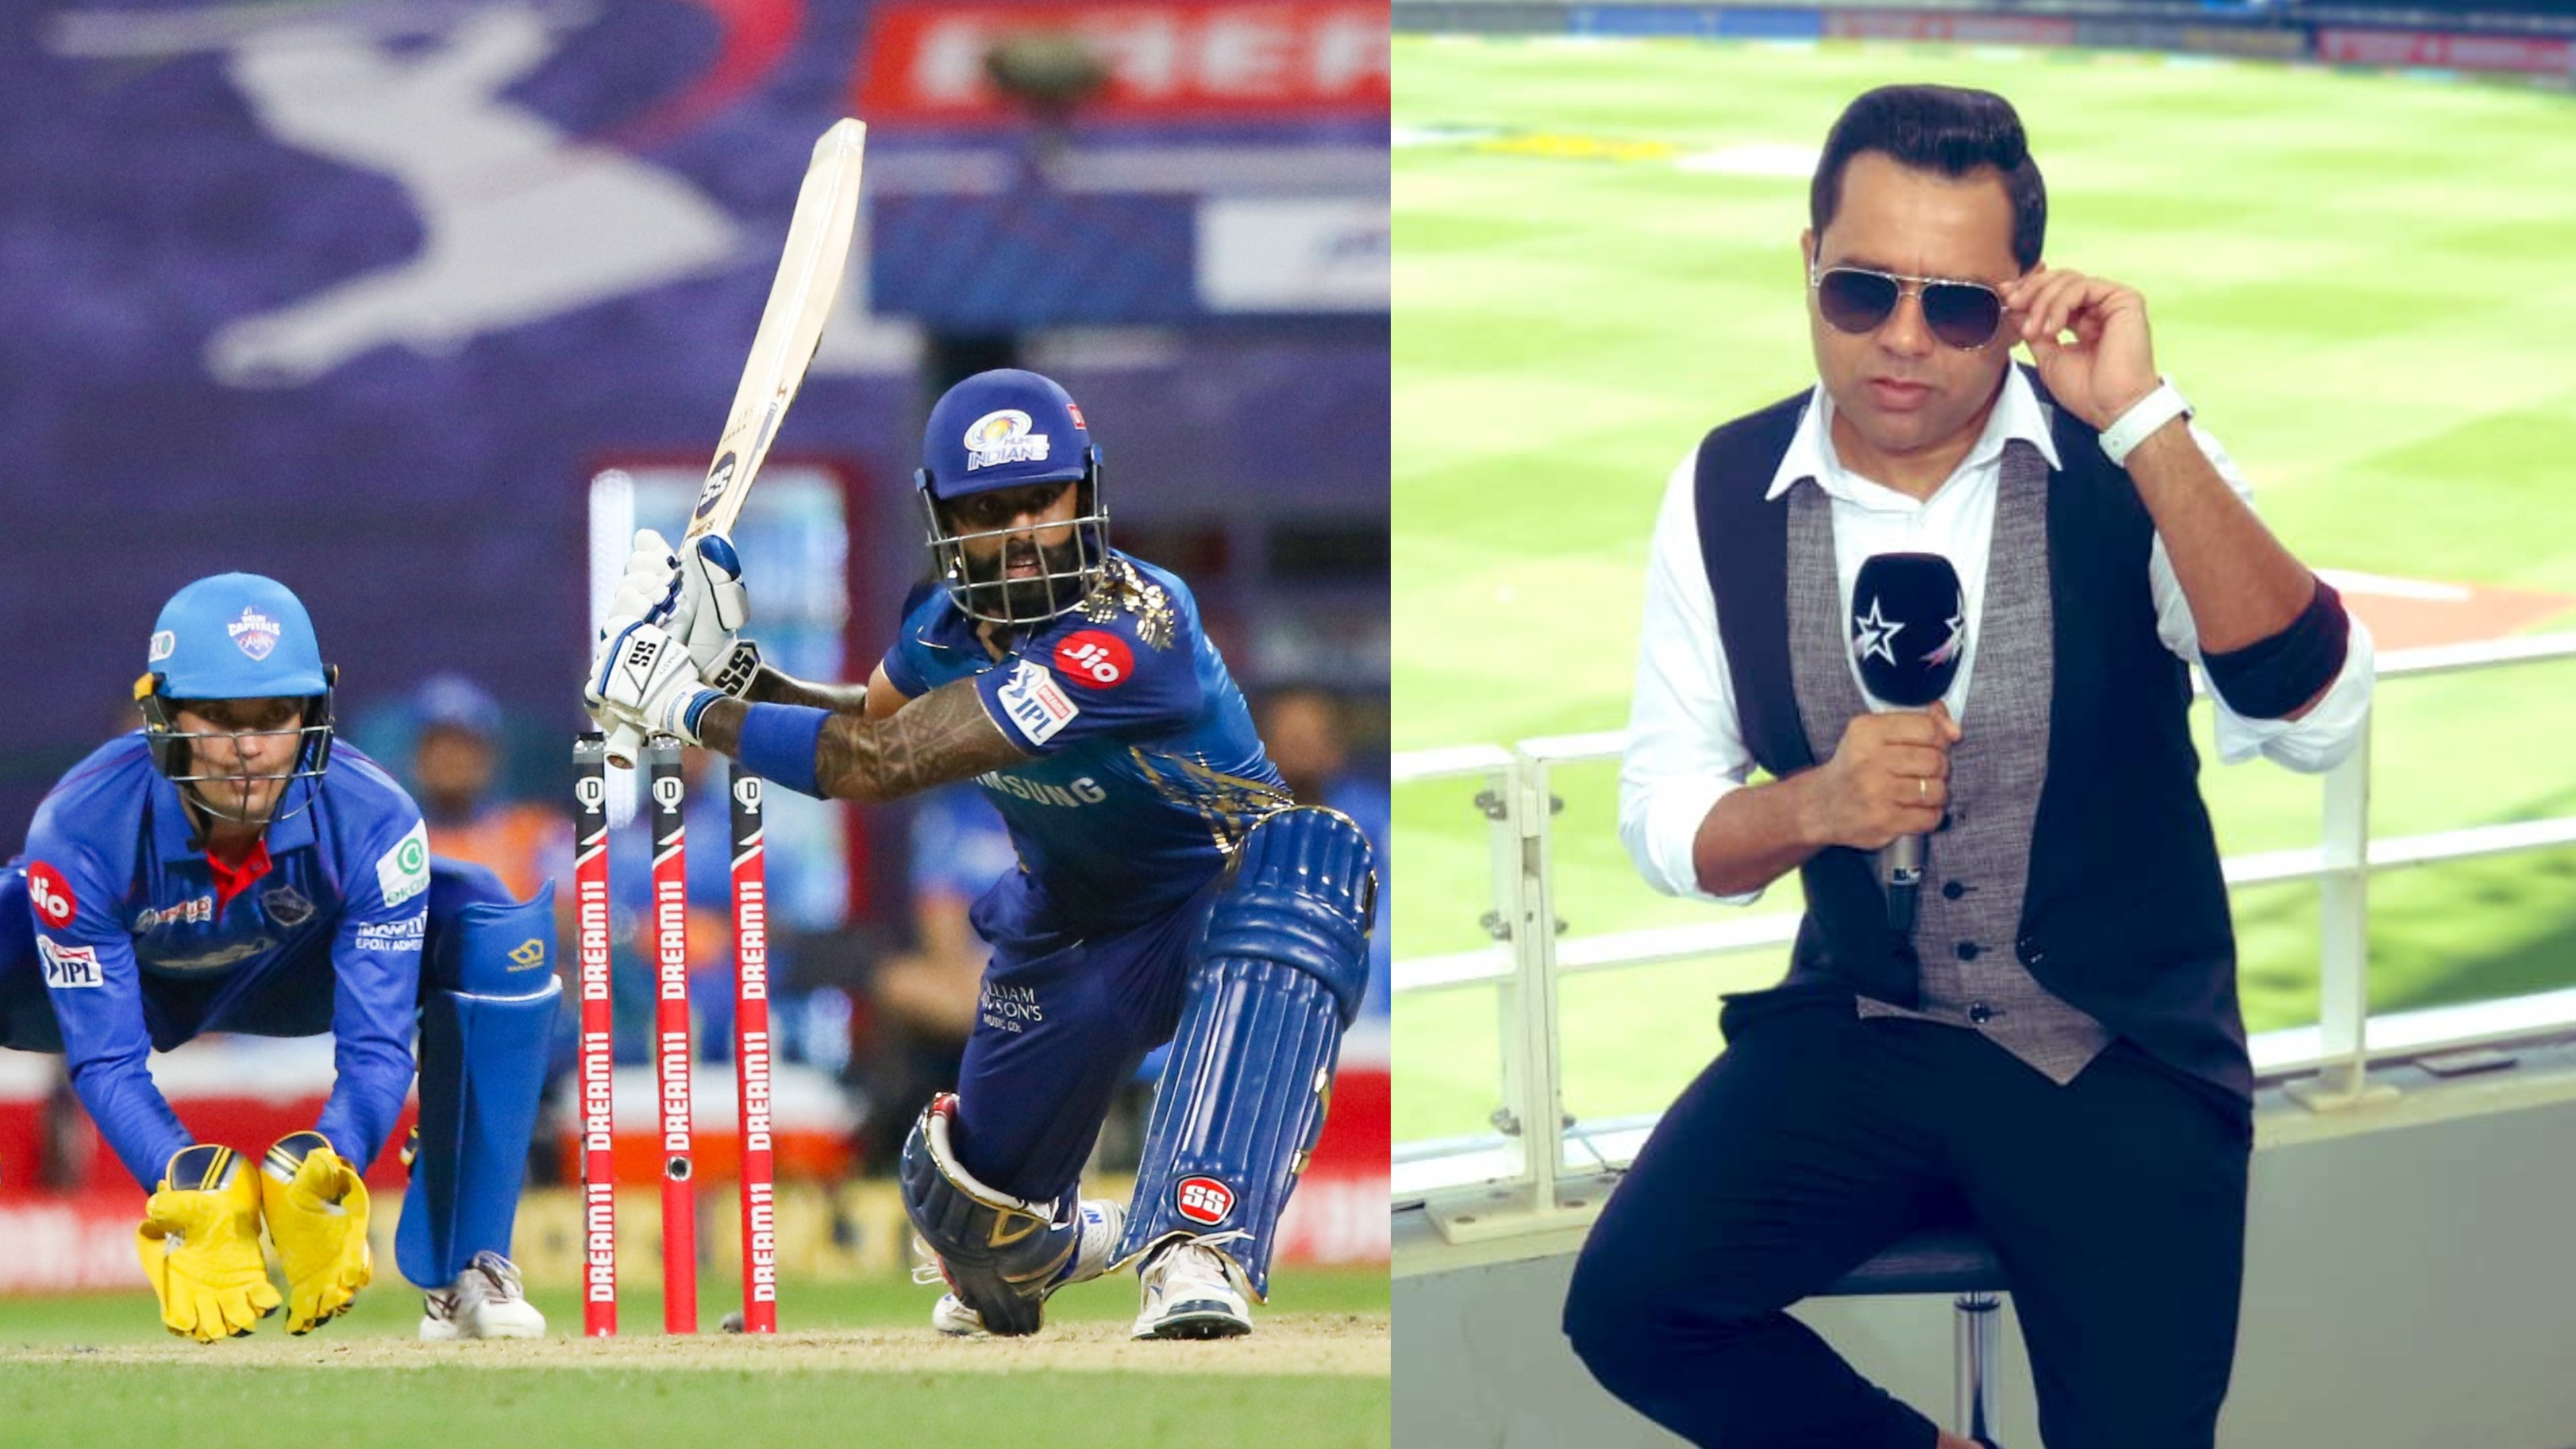 IPL 2020: Aakash Chopra makes bold prediction about MI's Suryakumar Yadav